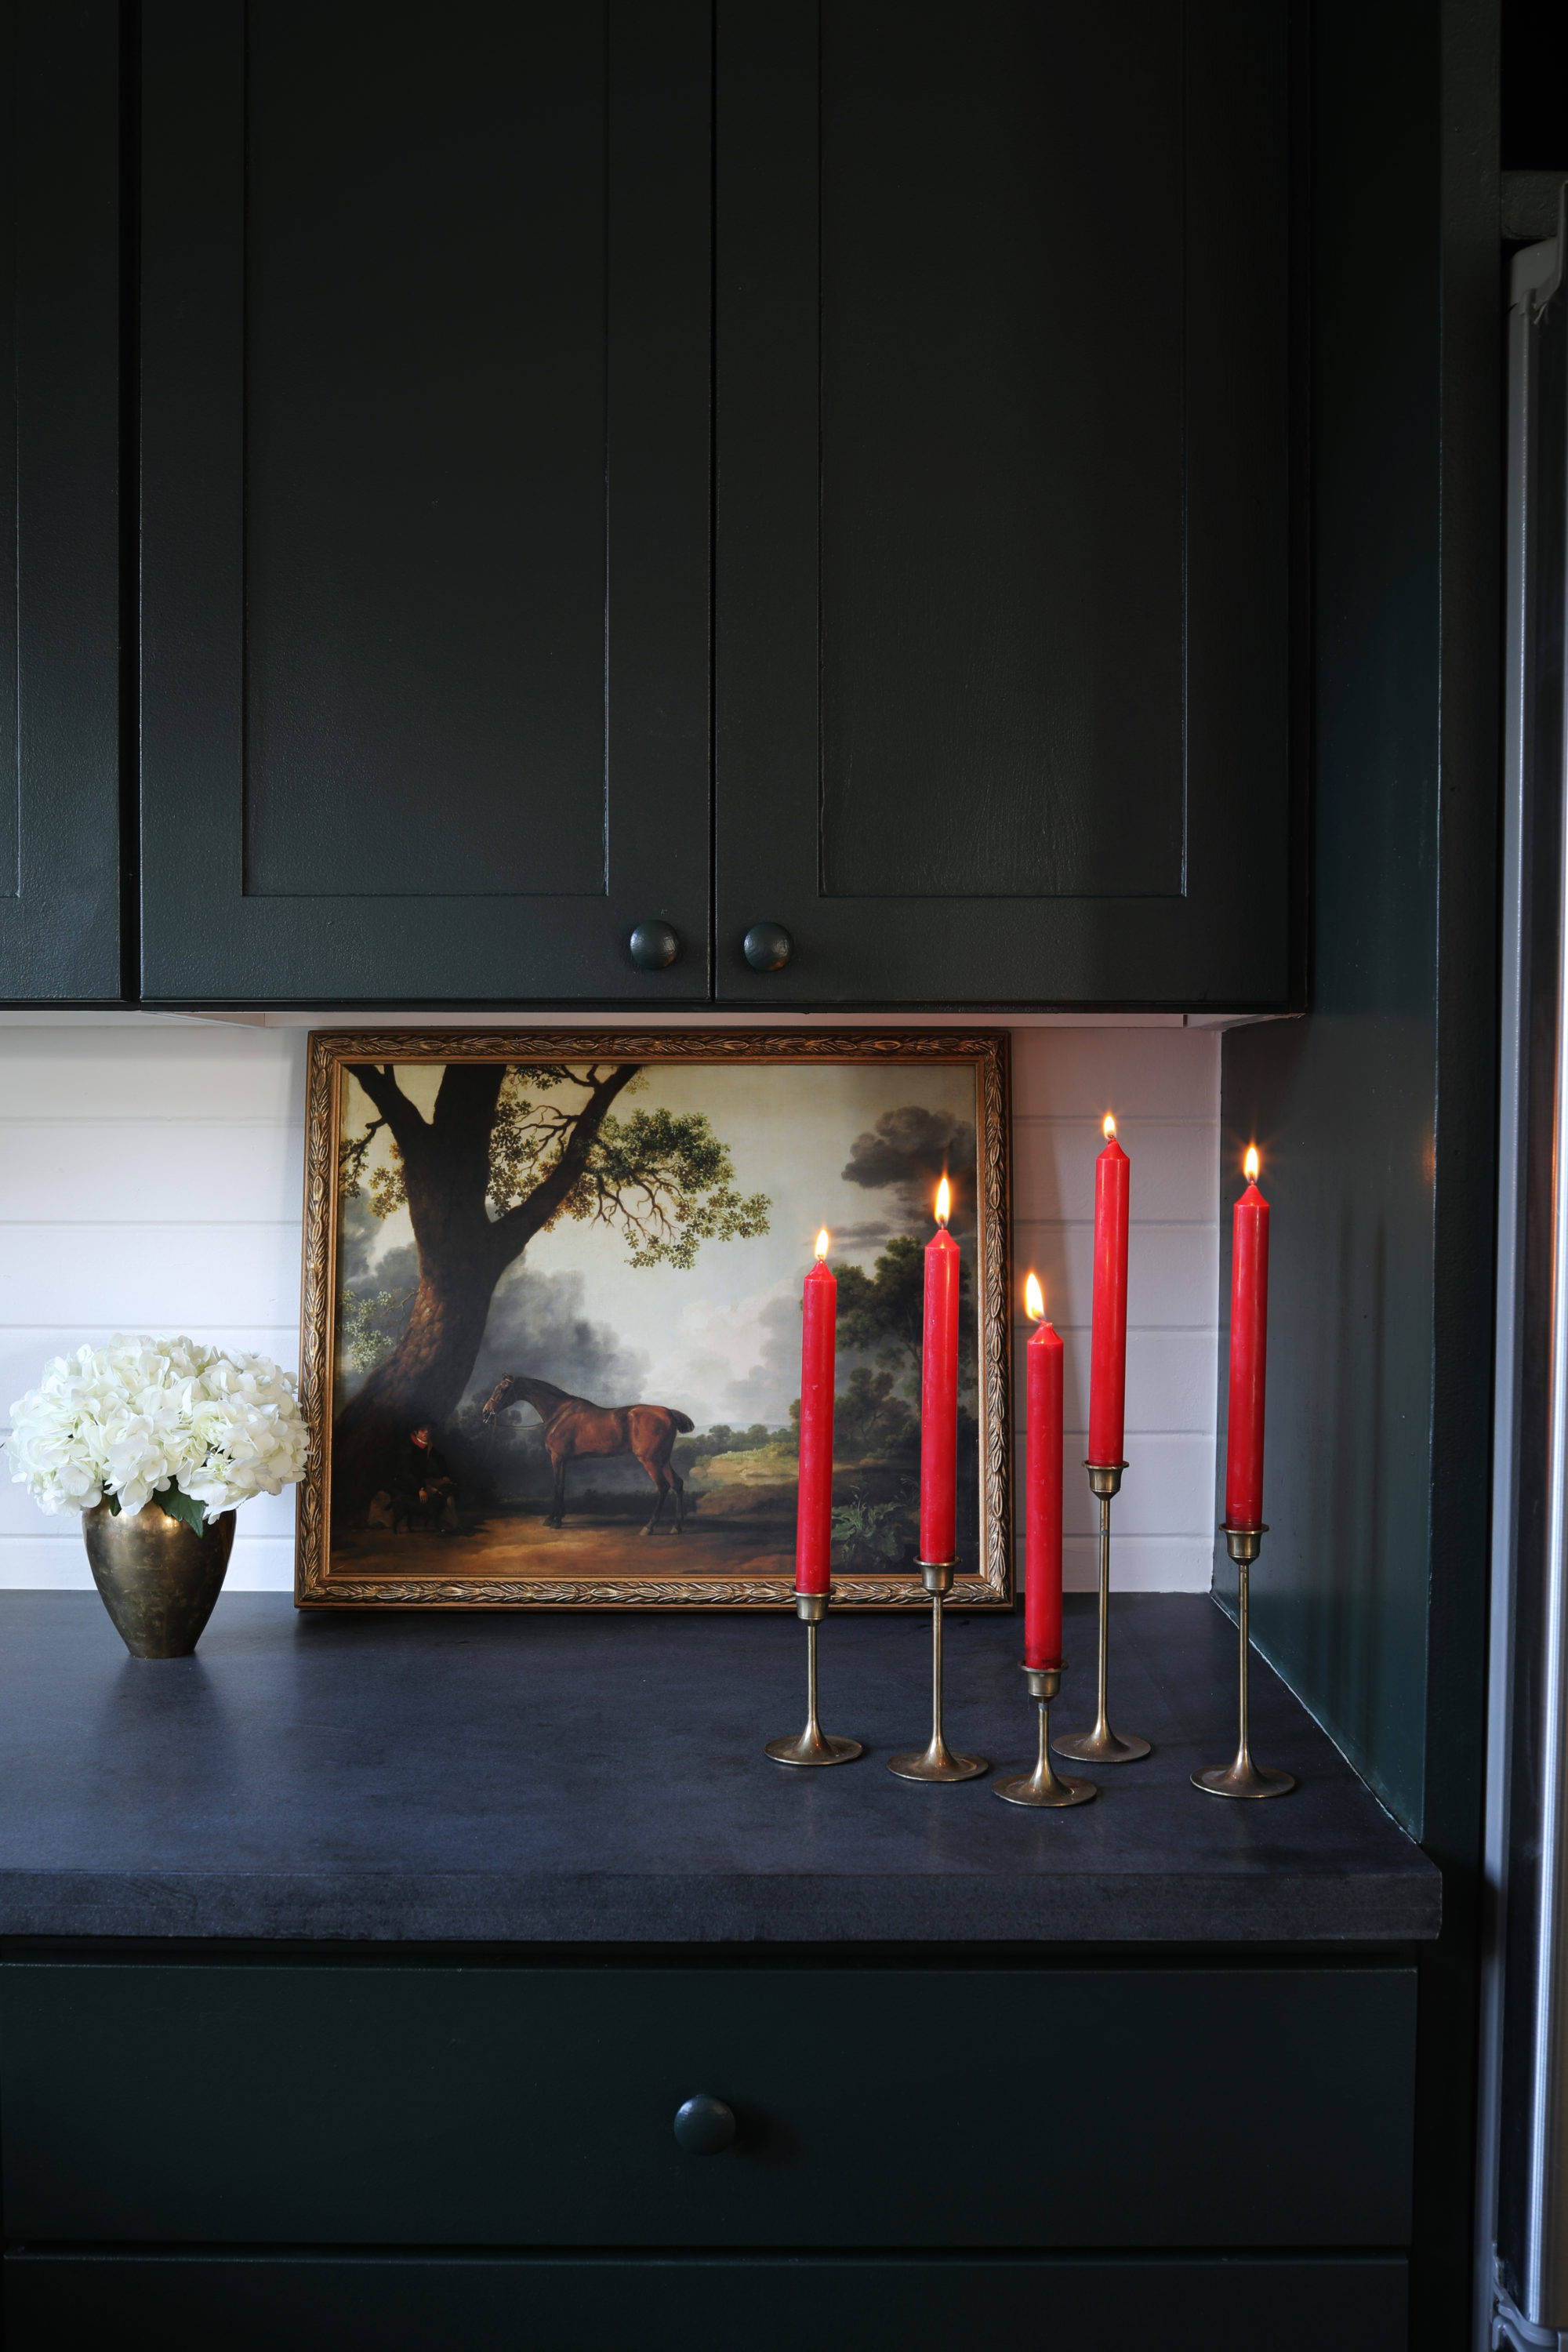 The-Grit-and-Polish-Tacoma-Kitchen-Candles-Art-e1543278410154.jpg